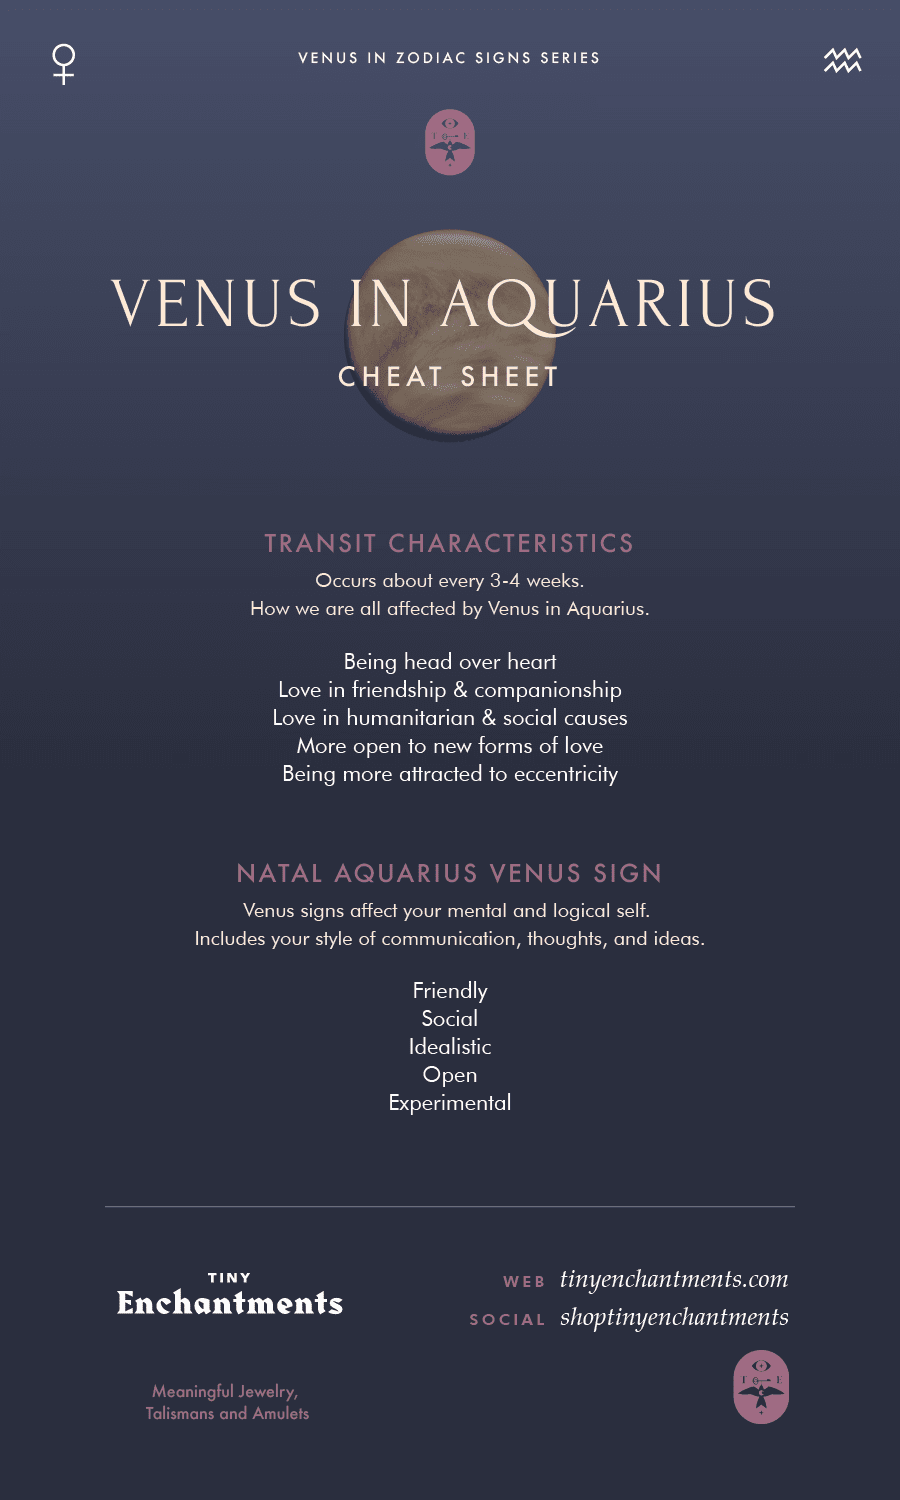 Venus in Aquarius Transit / Aquarius Venus Sign Personality Meanings Infographic